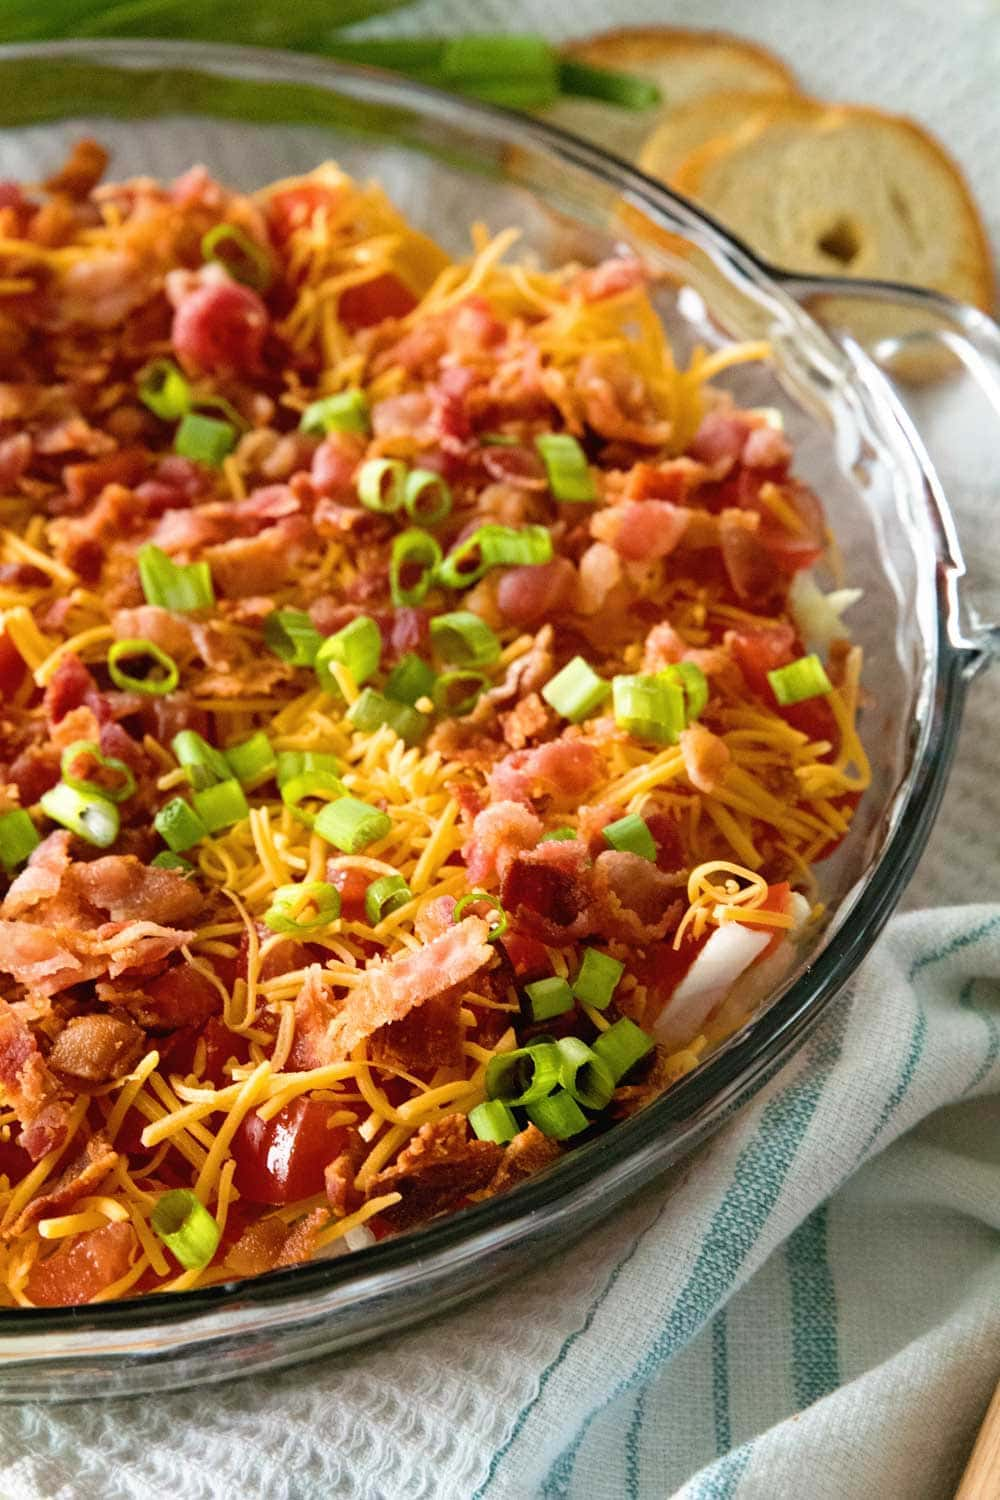 Easy BLT Dip ~ Take Your Favorite Summertime Sandwich and Make it into a Dip! Layers of Lettuce, Bacon, Cheese and Tomatoes! The Perfect Dip for a Party During the Summer Months!